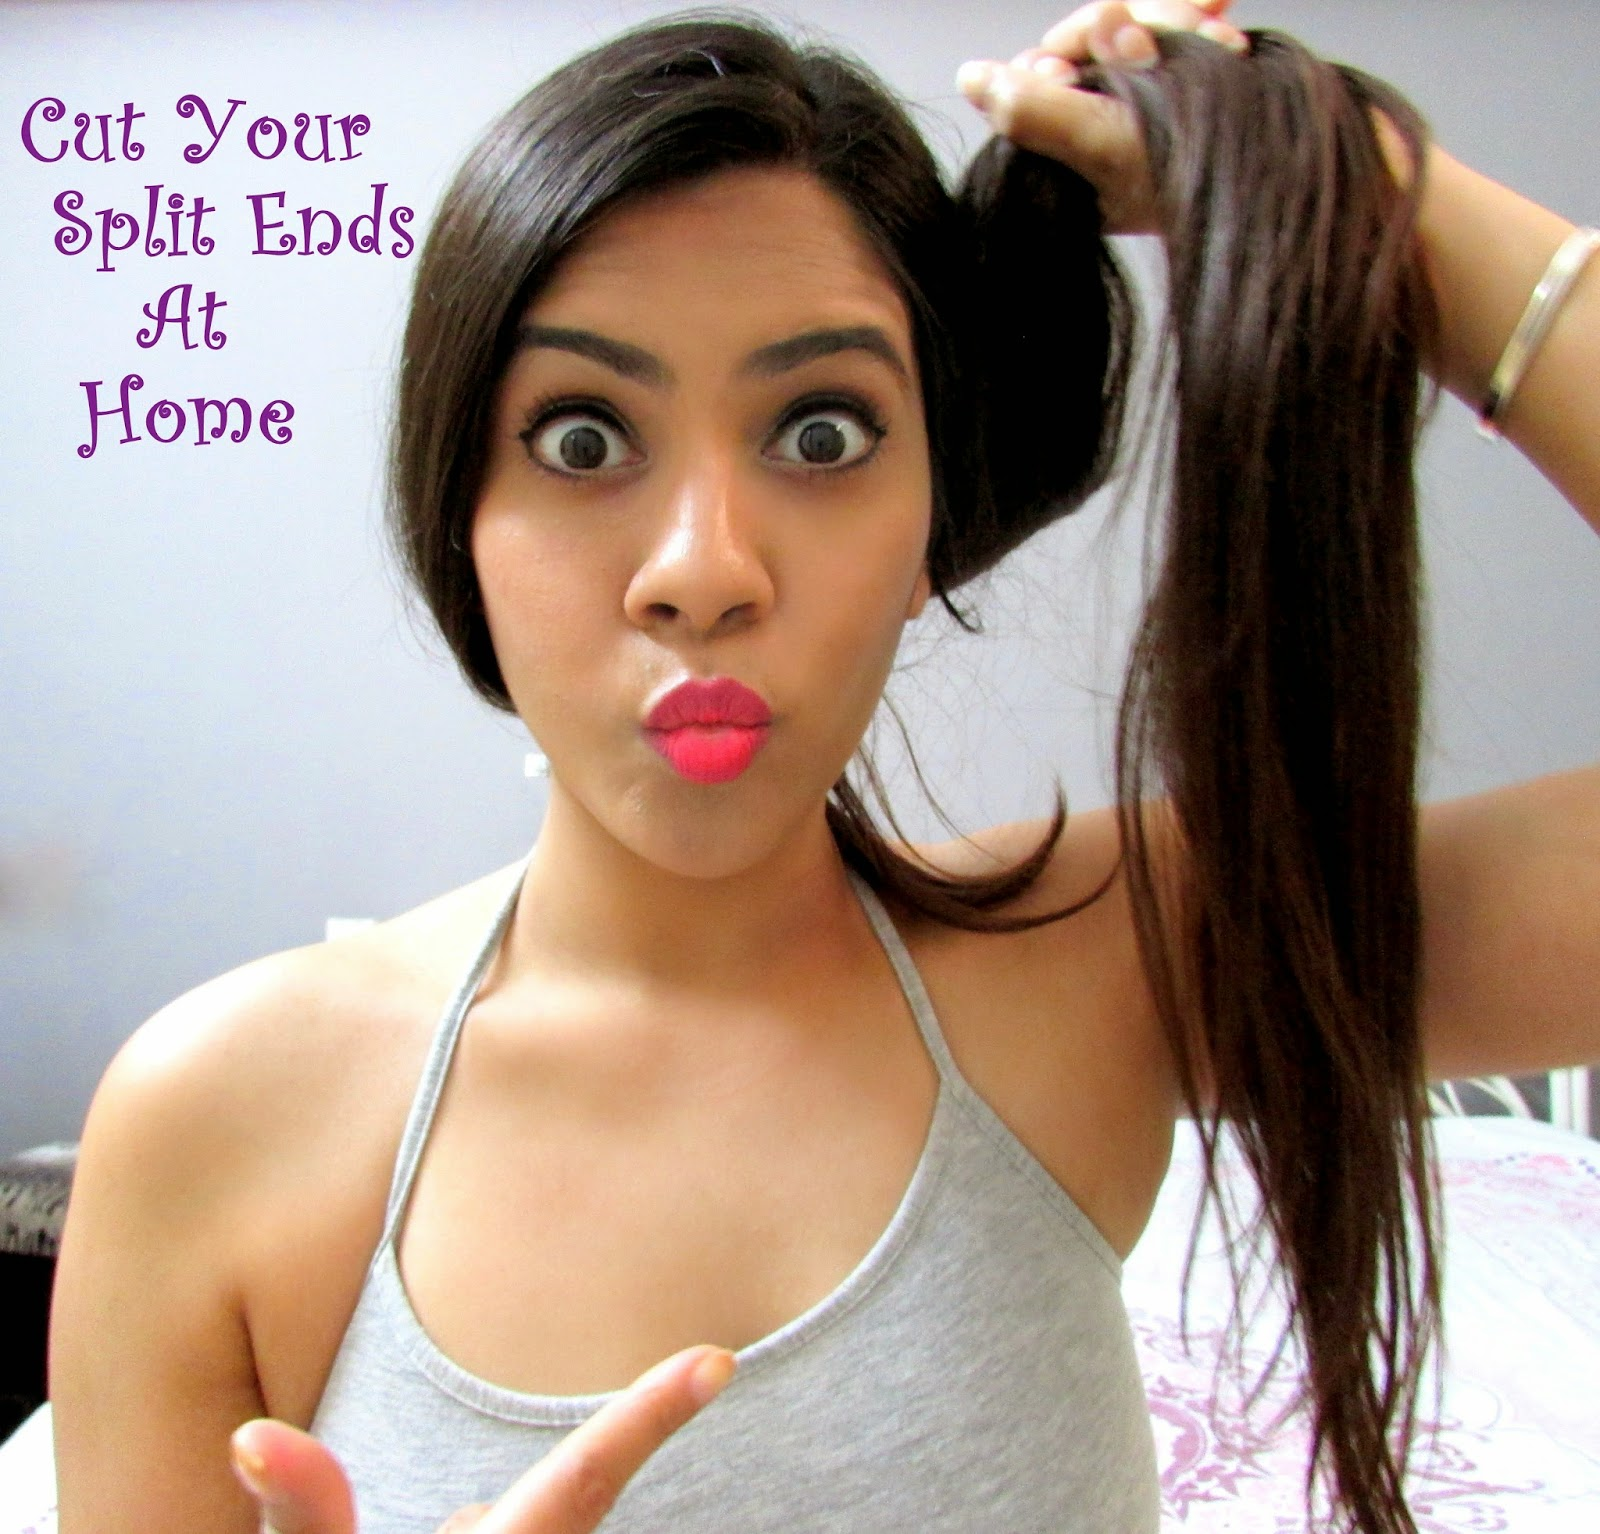 How to cut split ends, split ends, hair ends, hair split ends, how to get rid if split ends, how to cut split ends in long hair, how to cut split ends in shirt hair, how to cut split ends yourself, DIY split end removal, cut split ends, cut split ends at home, cut your hair at home, hair care, how to get strong hair, how to get healthy hair, how to get strong hair, heathy hair, long hair , strong hair, shiny hair, hair , hair fall , hair fall control, how to cute hair fall, at home hair care, hair care,